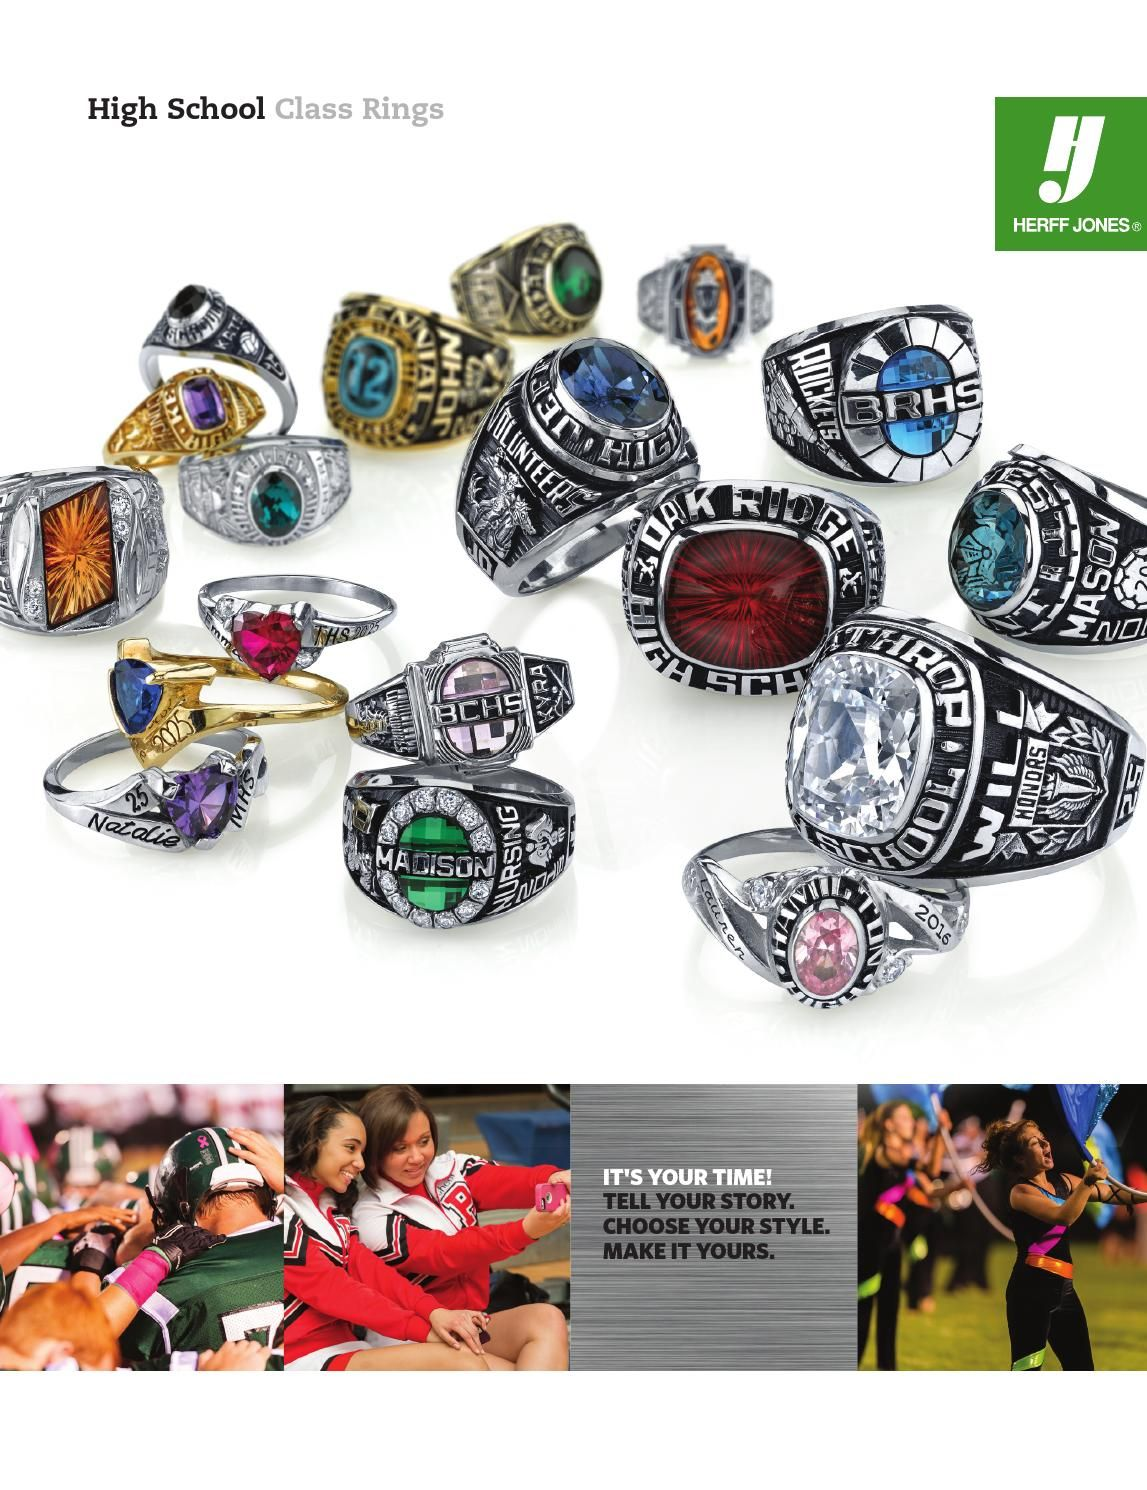 Herff Jones High School Class Ring Catalog Check Out